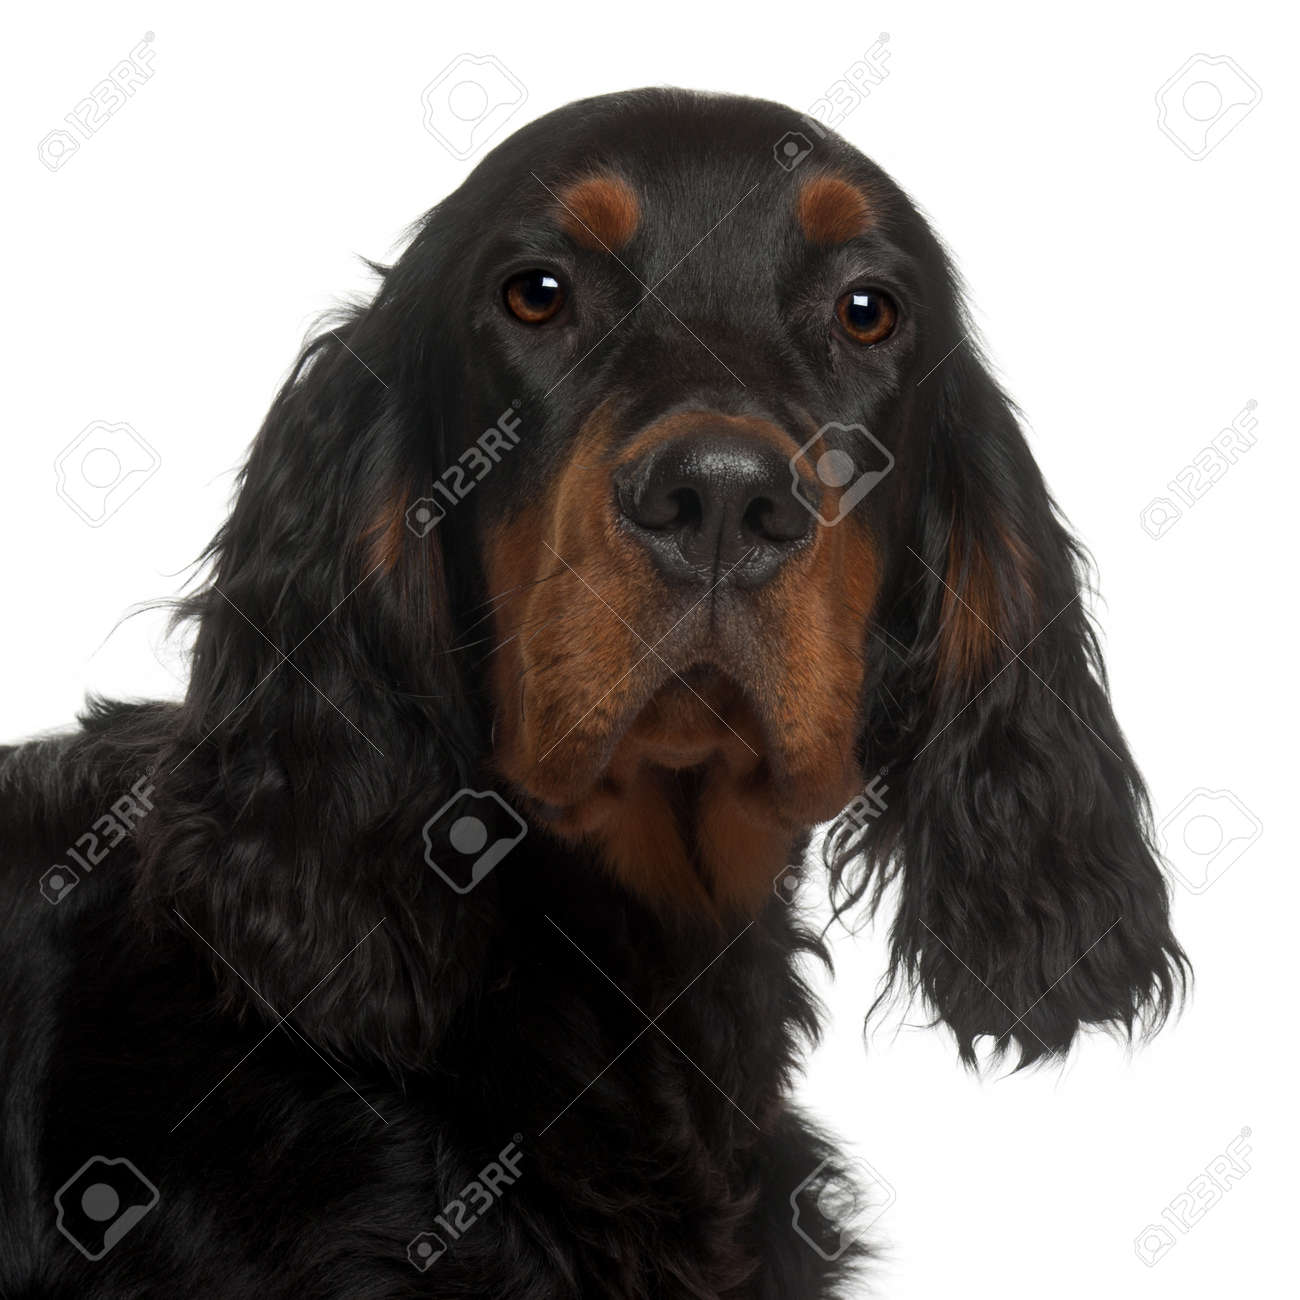 Gordon Setter puppy, 6 months old, in front of white background Stock Photo - 13584514